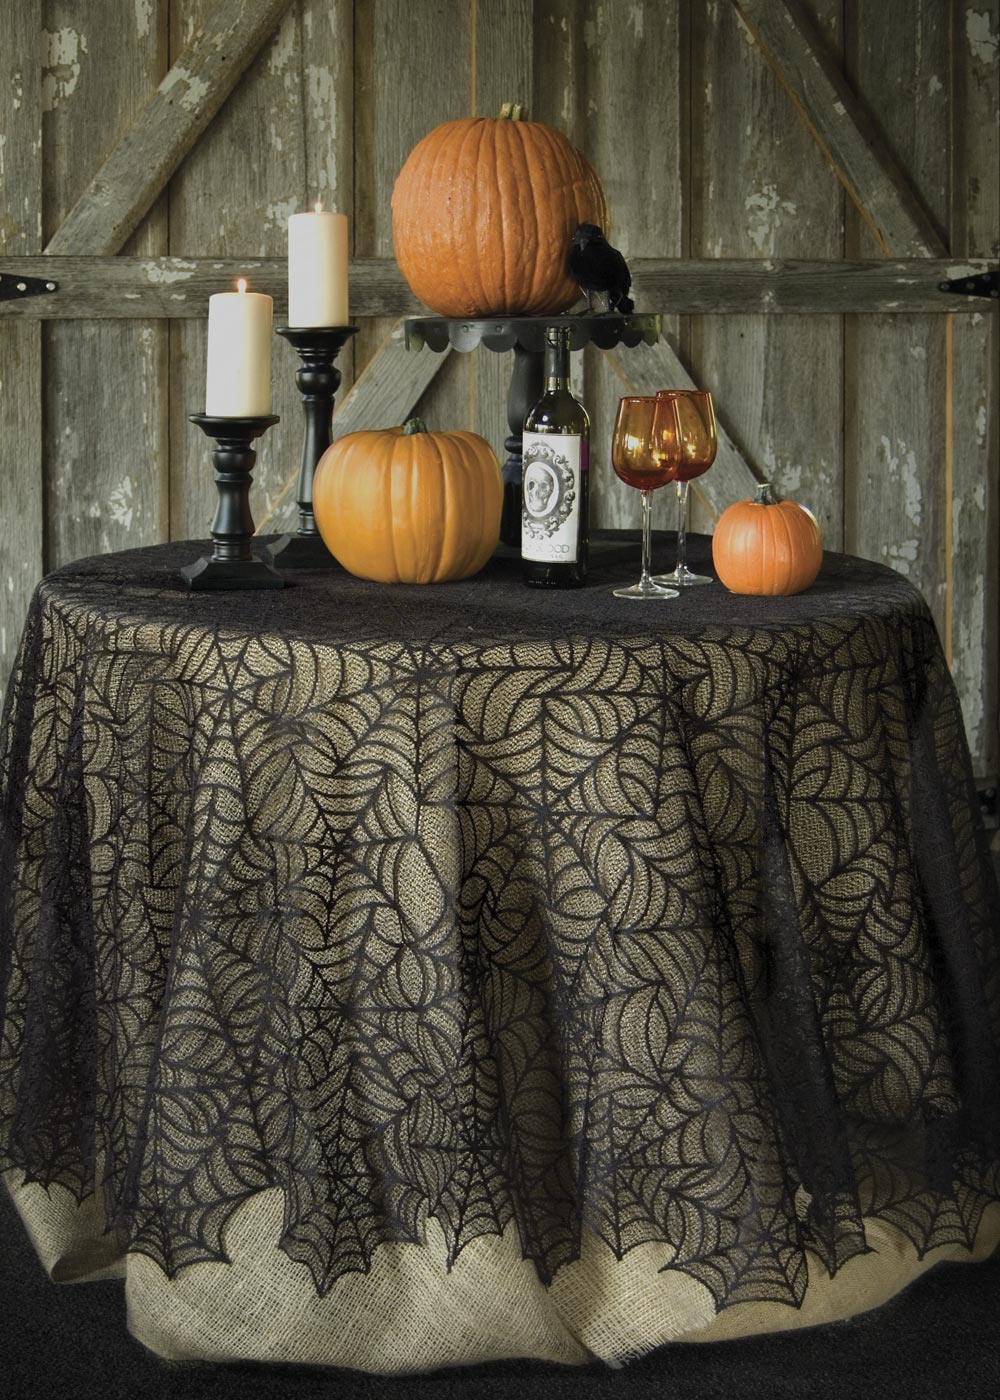 "Spider Web Round Tablecloth 90"" 30% OFF! (2 LEFT)"